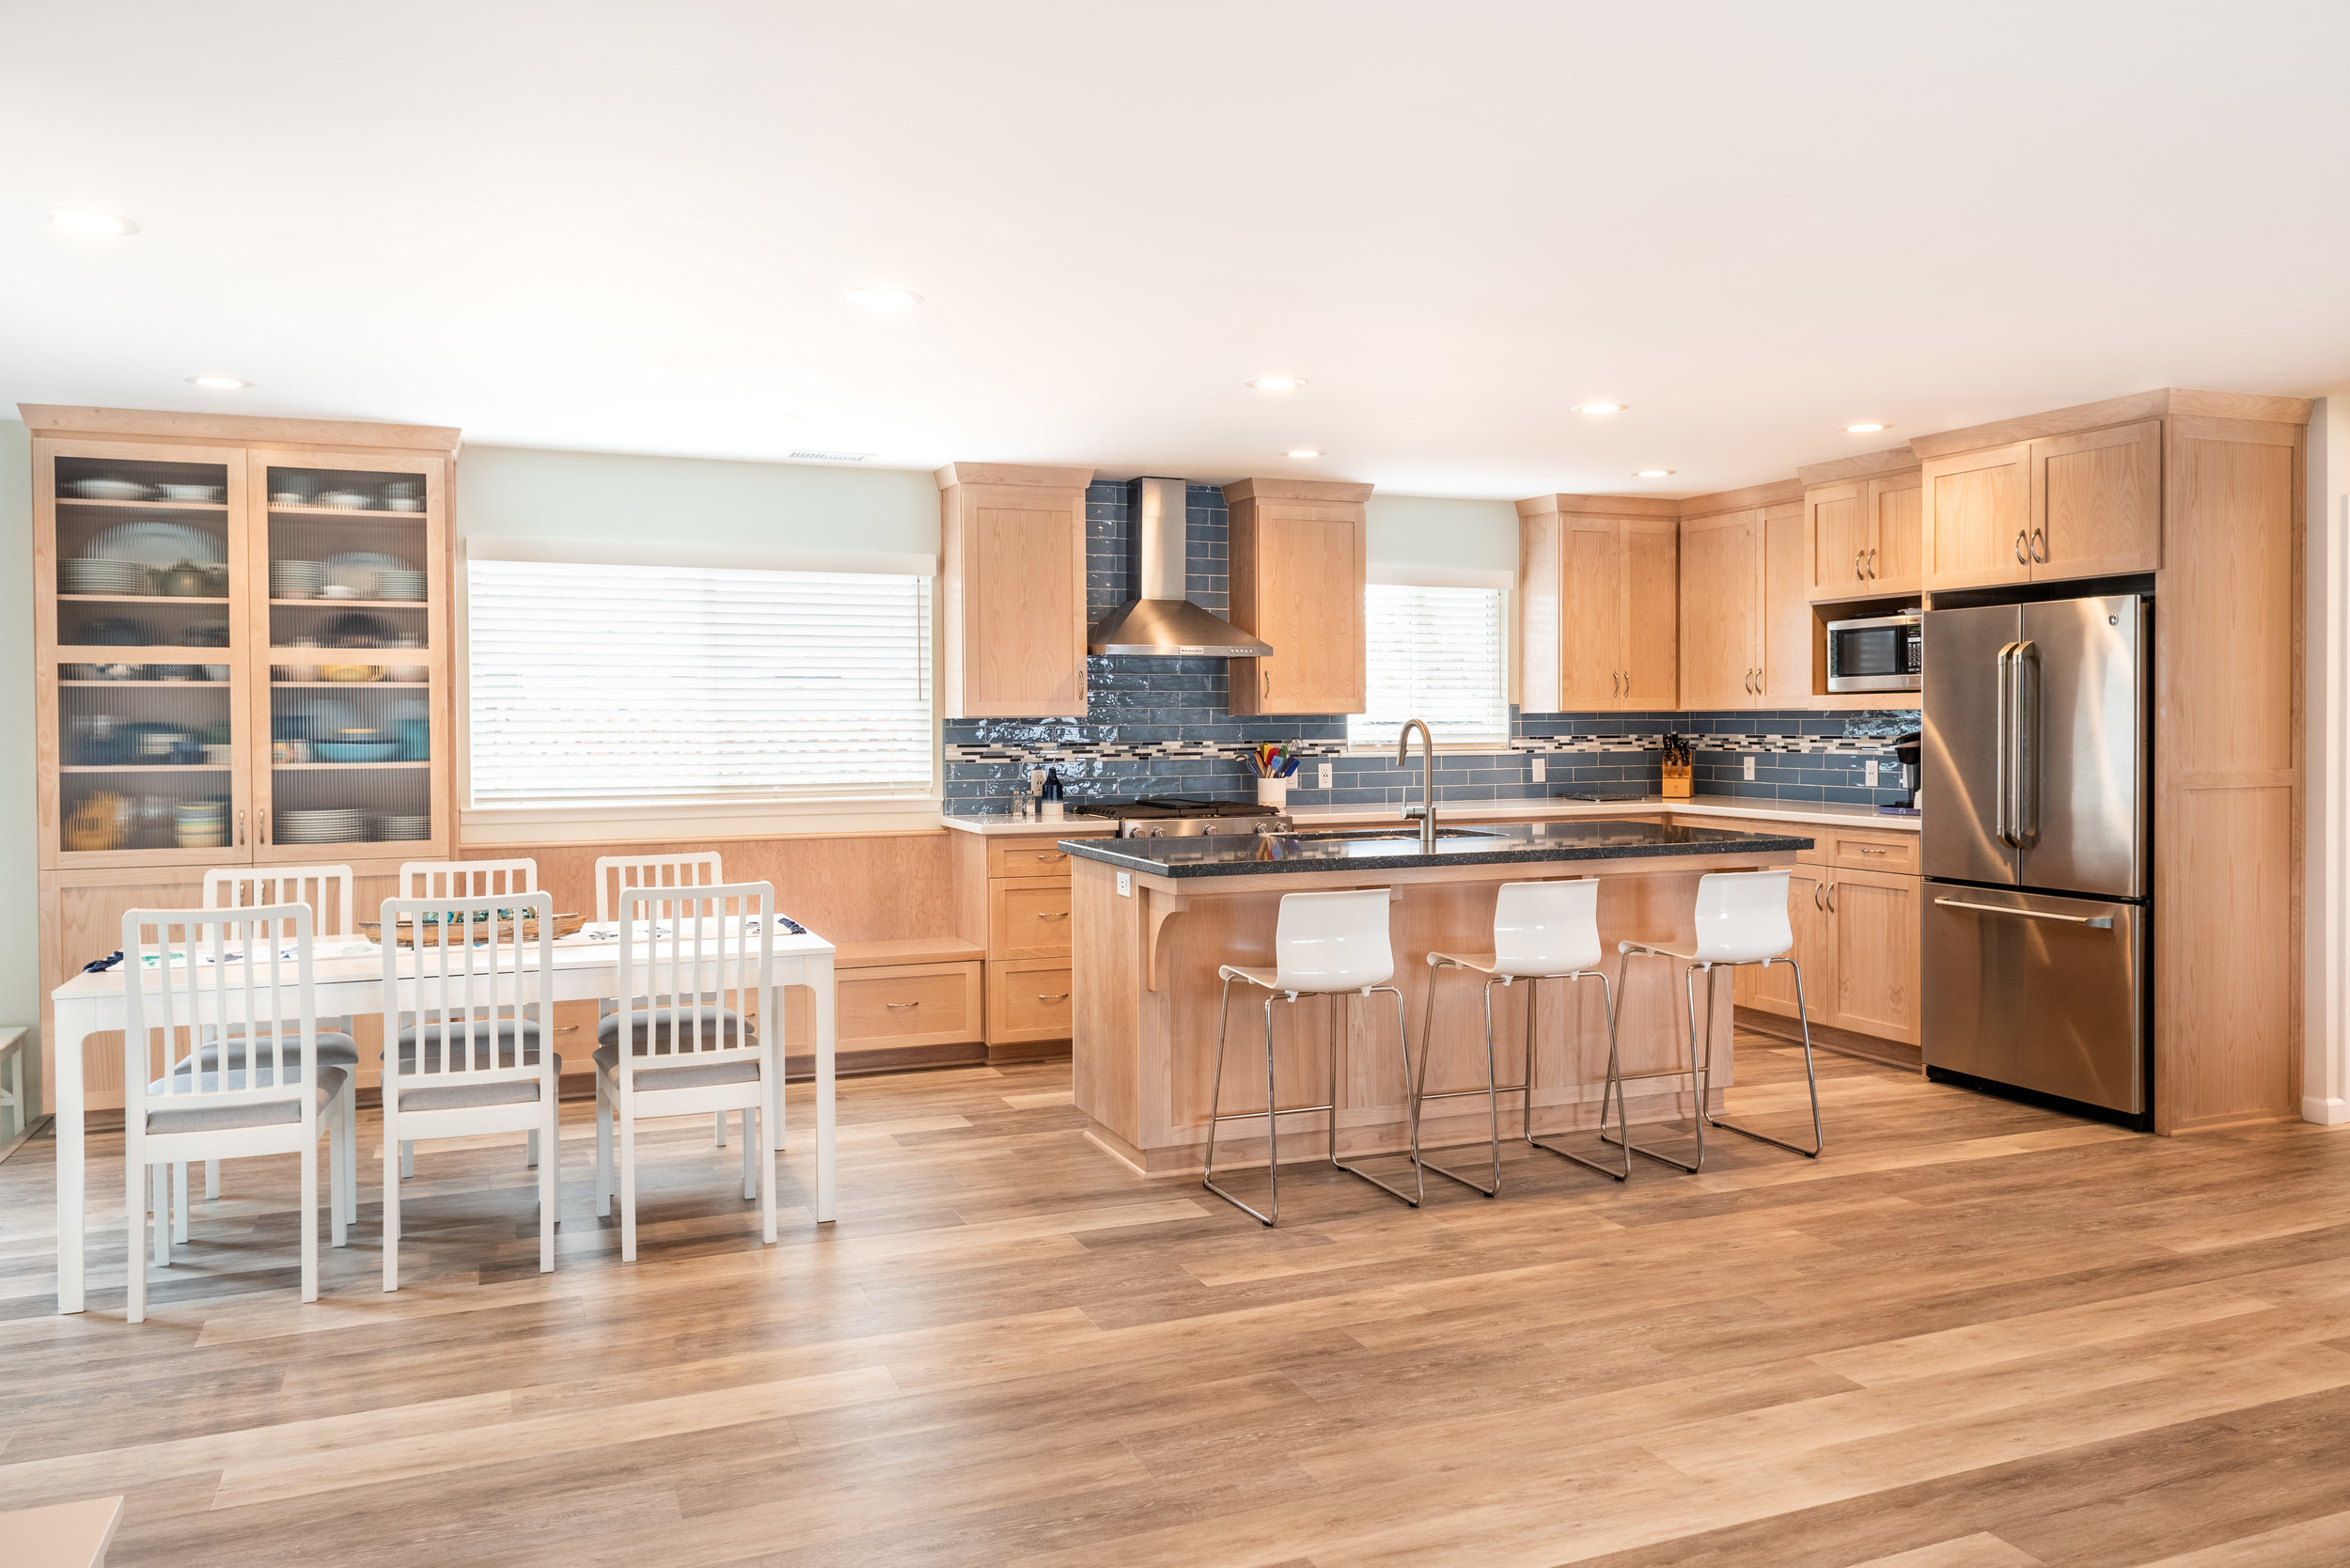 Coastal Contemporary open-concept kitchen with natural wood custom cabinets